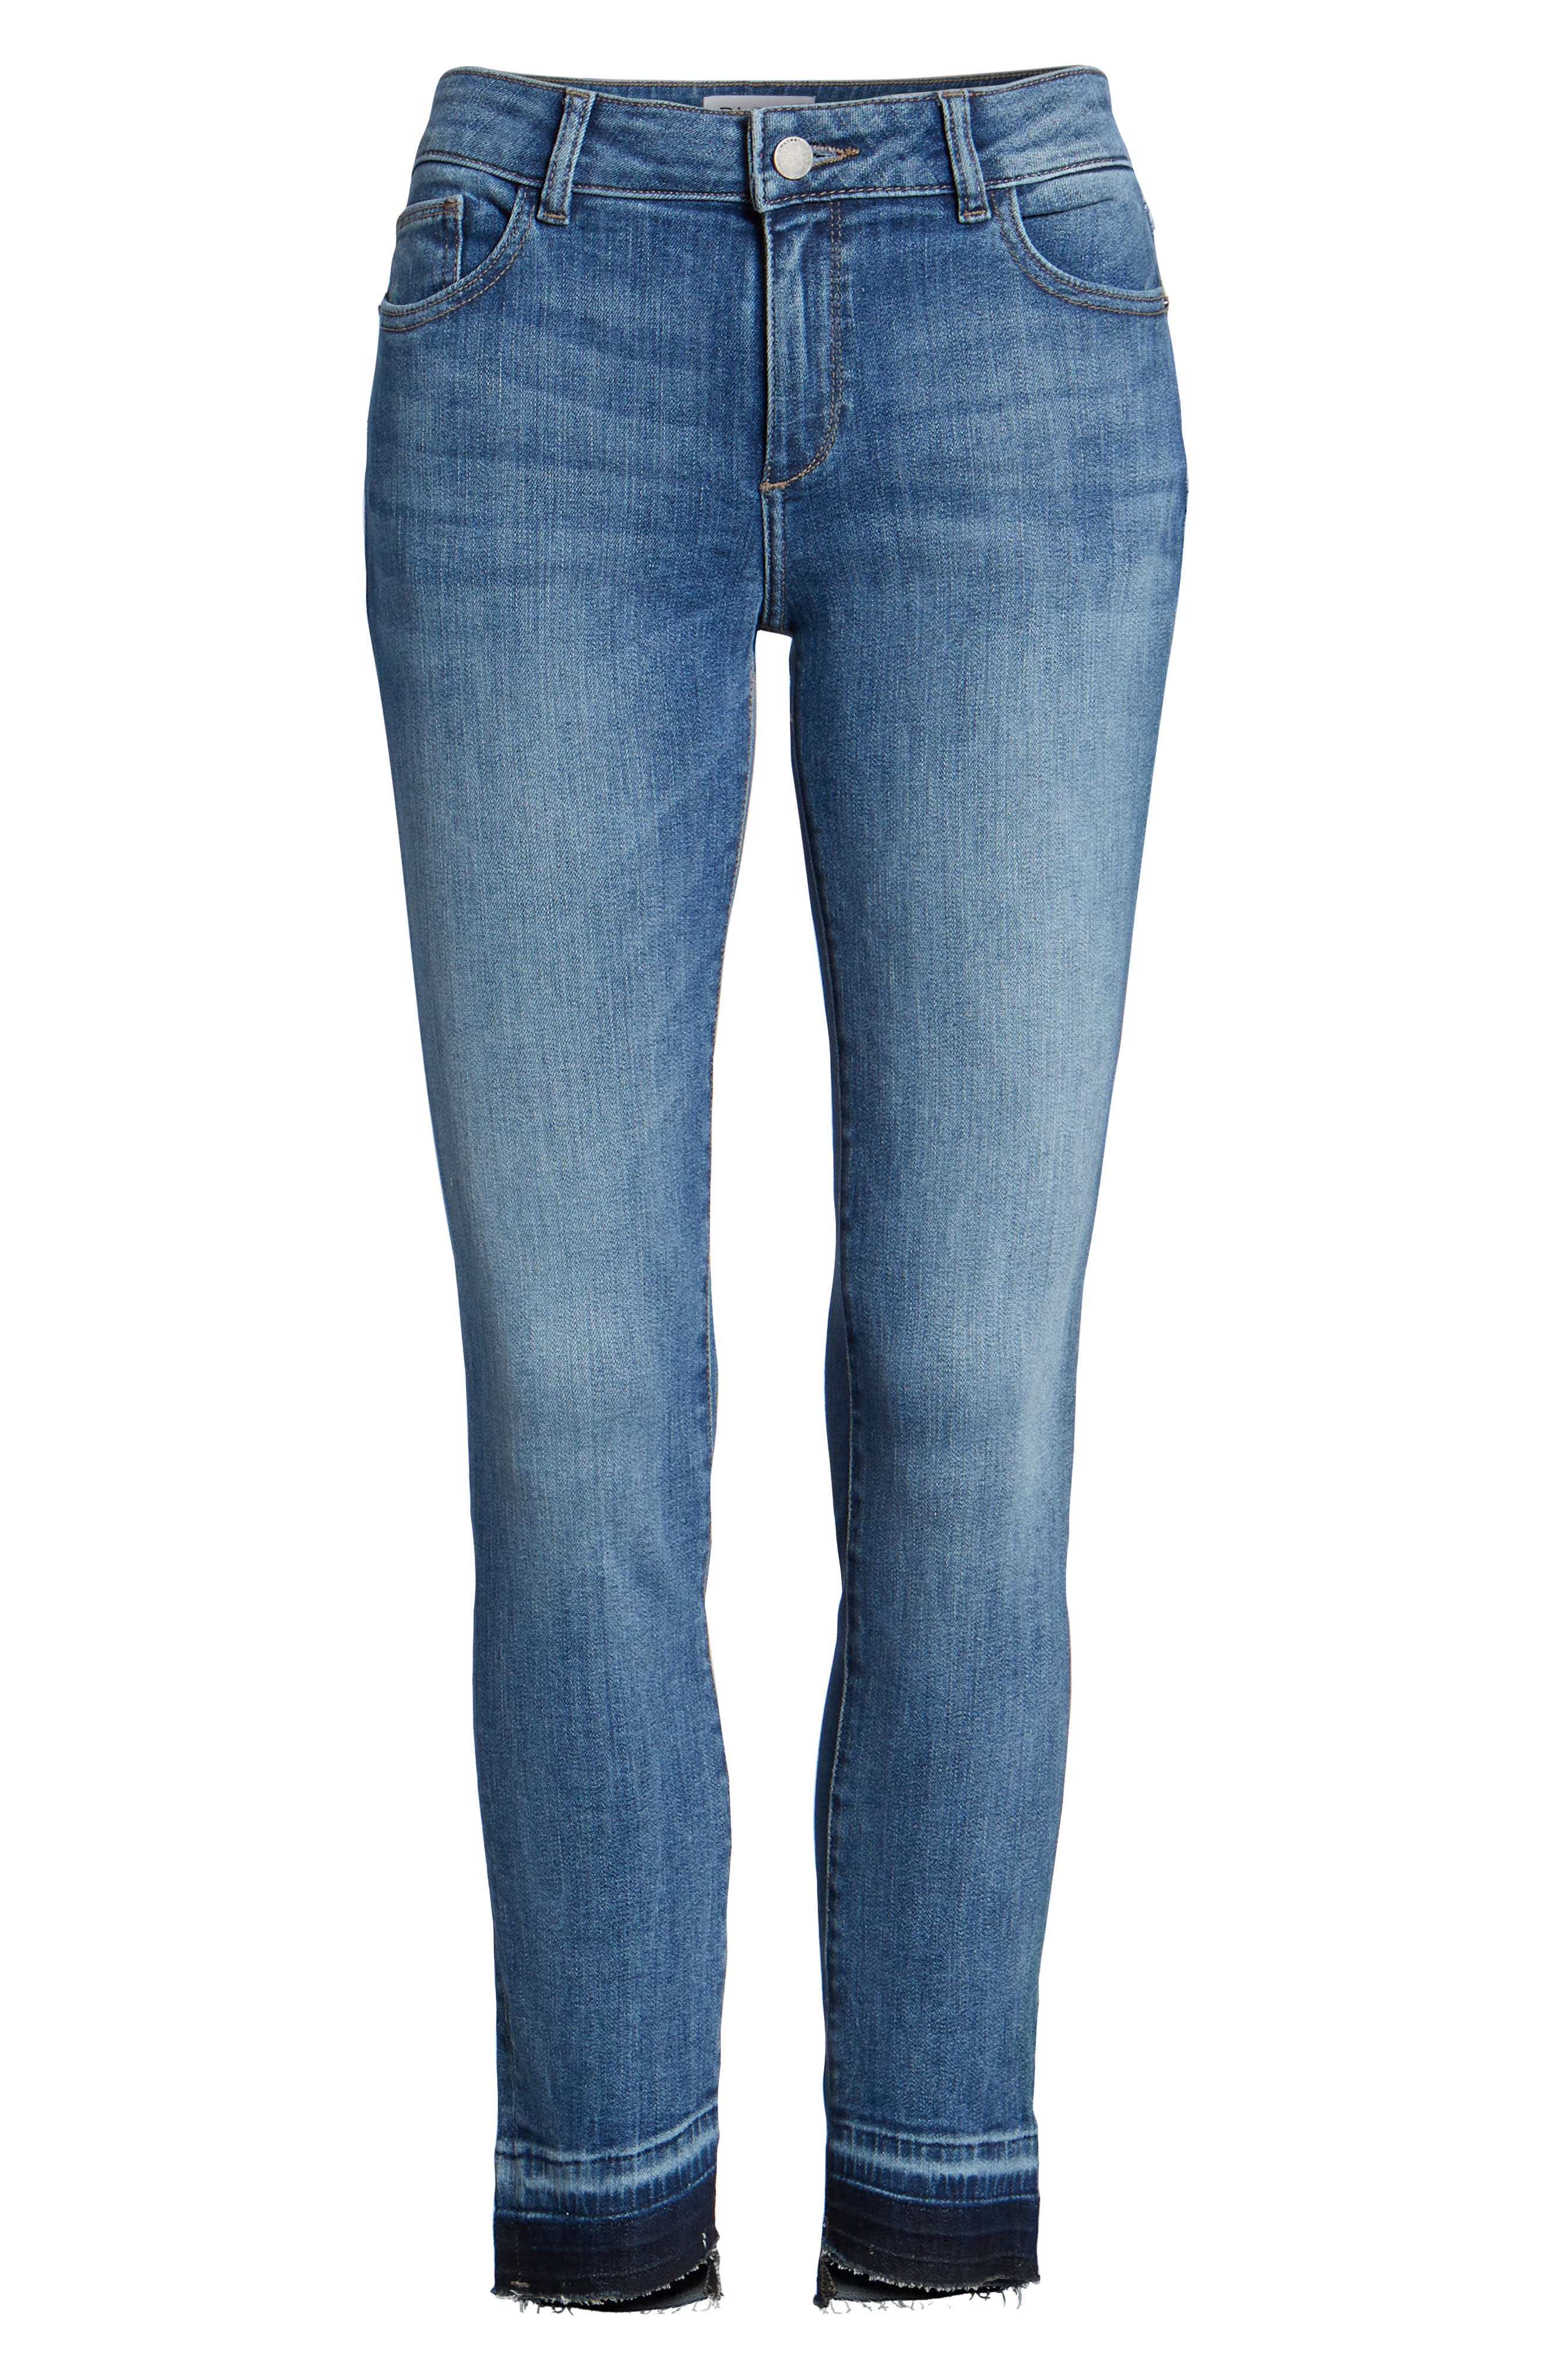 Margaux Instasculpt Ankle Skinny Jeans,                             Alternate thumbnail 7, color,                             COSTA MESA